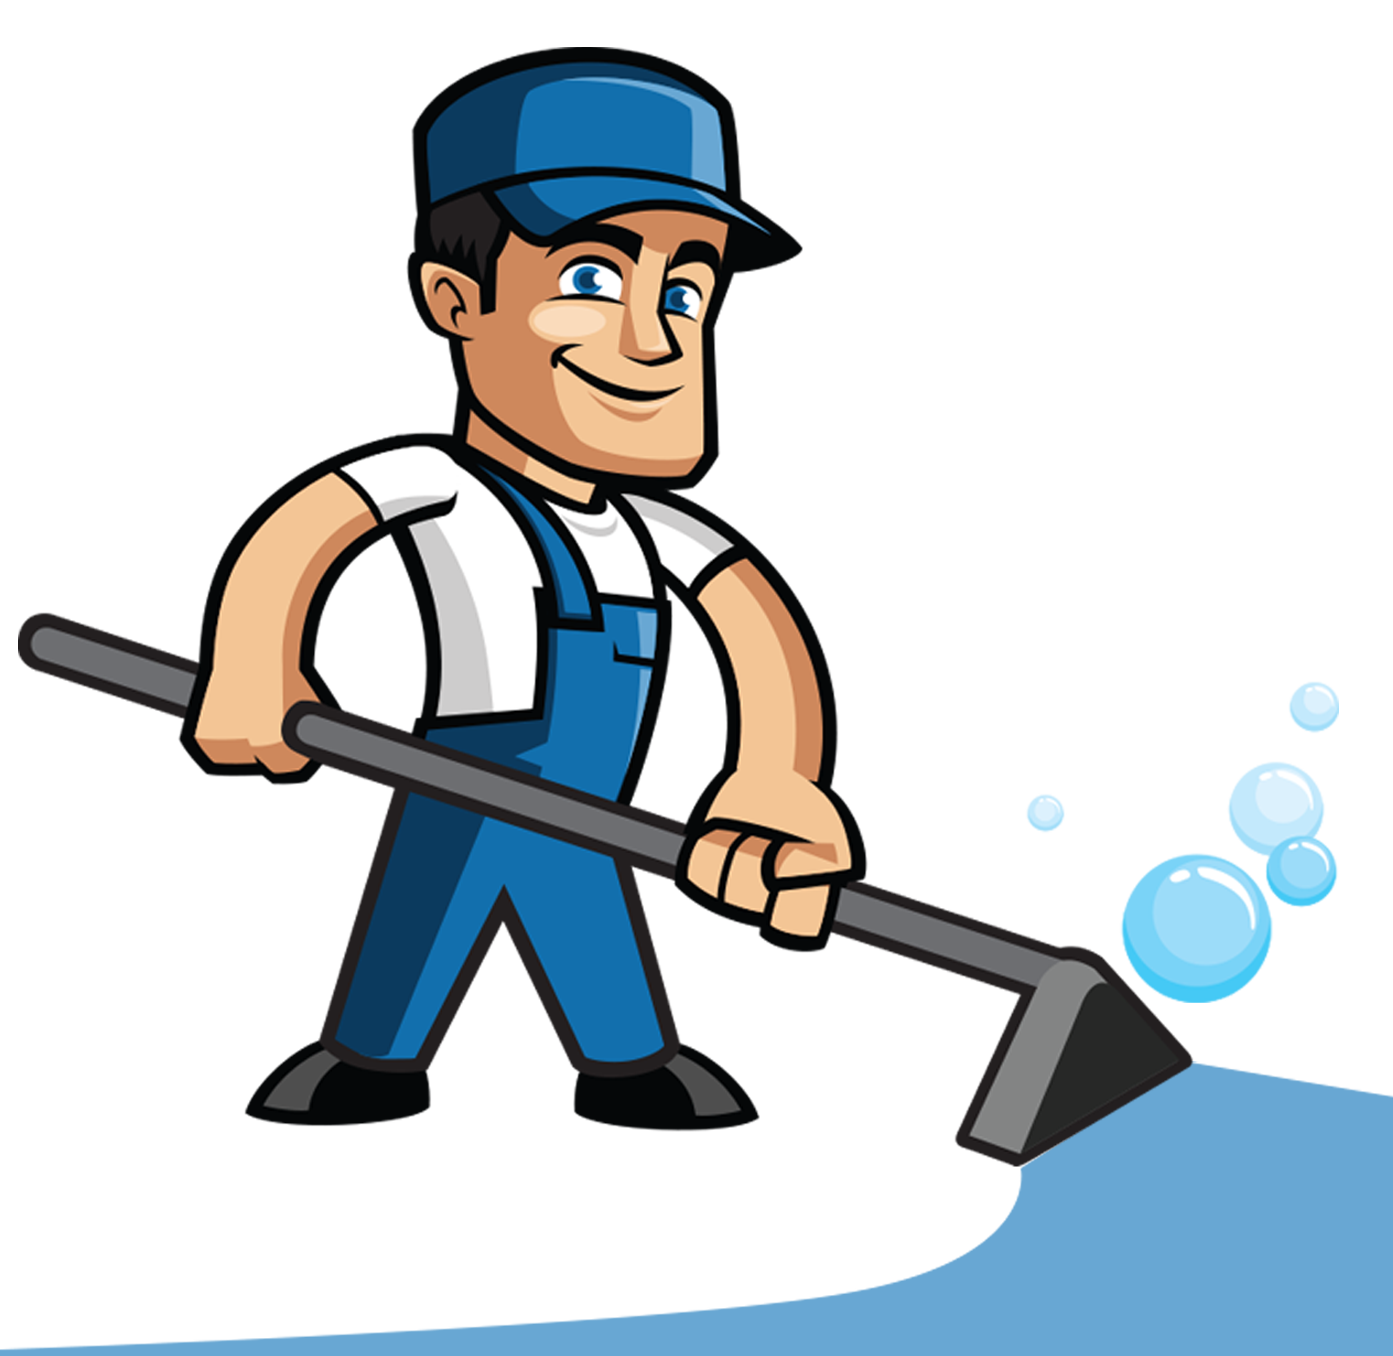 Professional clipart professional worker. Carpet cleaning cartoon